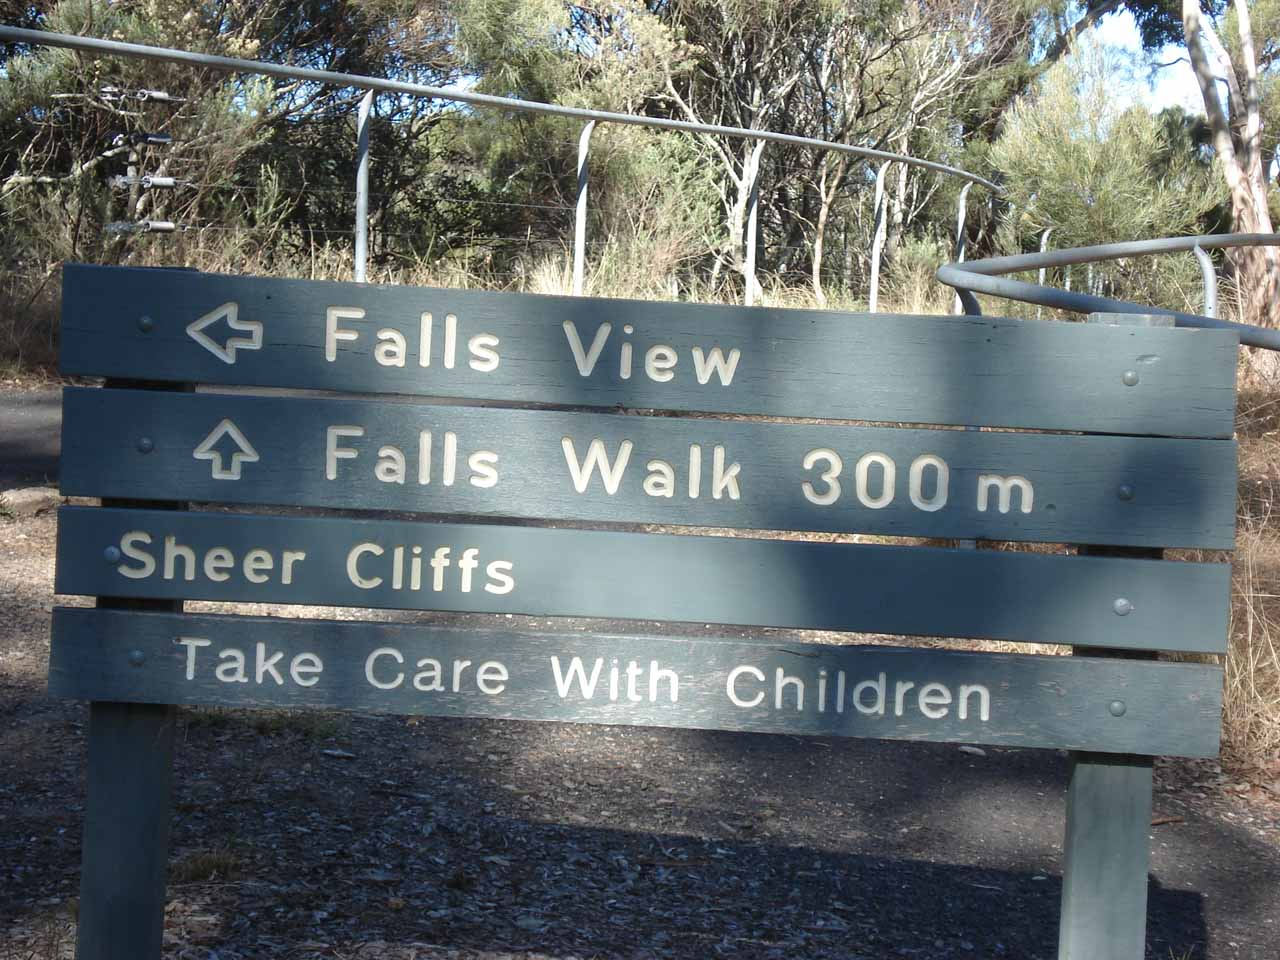 Starting on the walk to see Dangarsleigh Falls